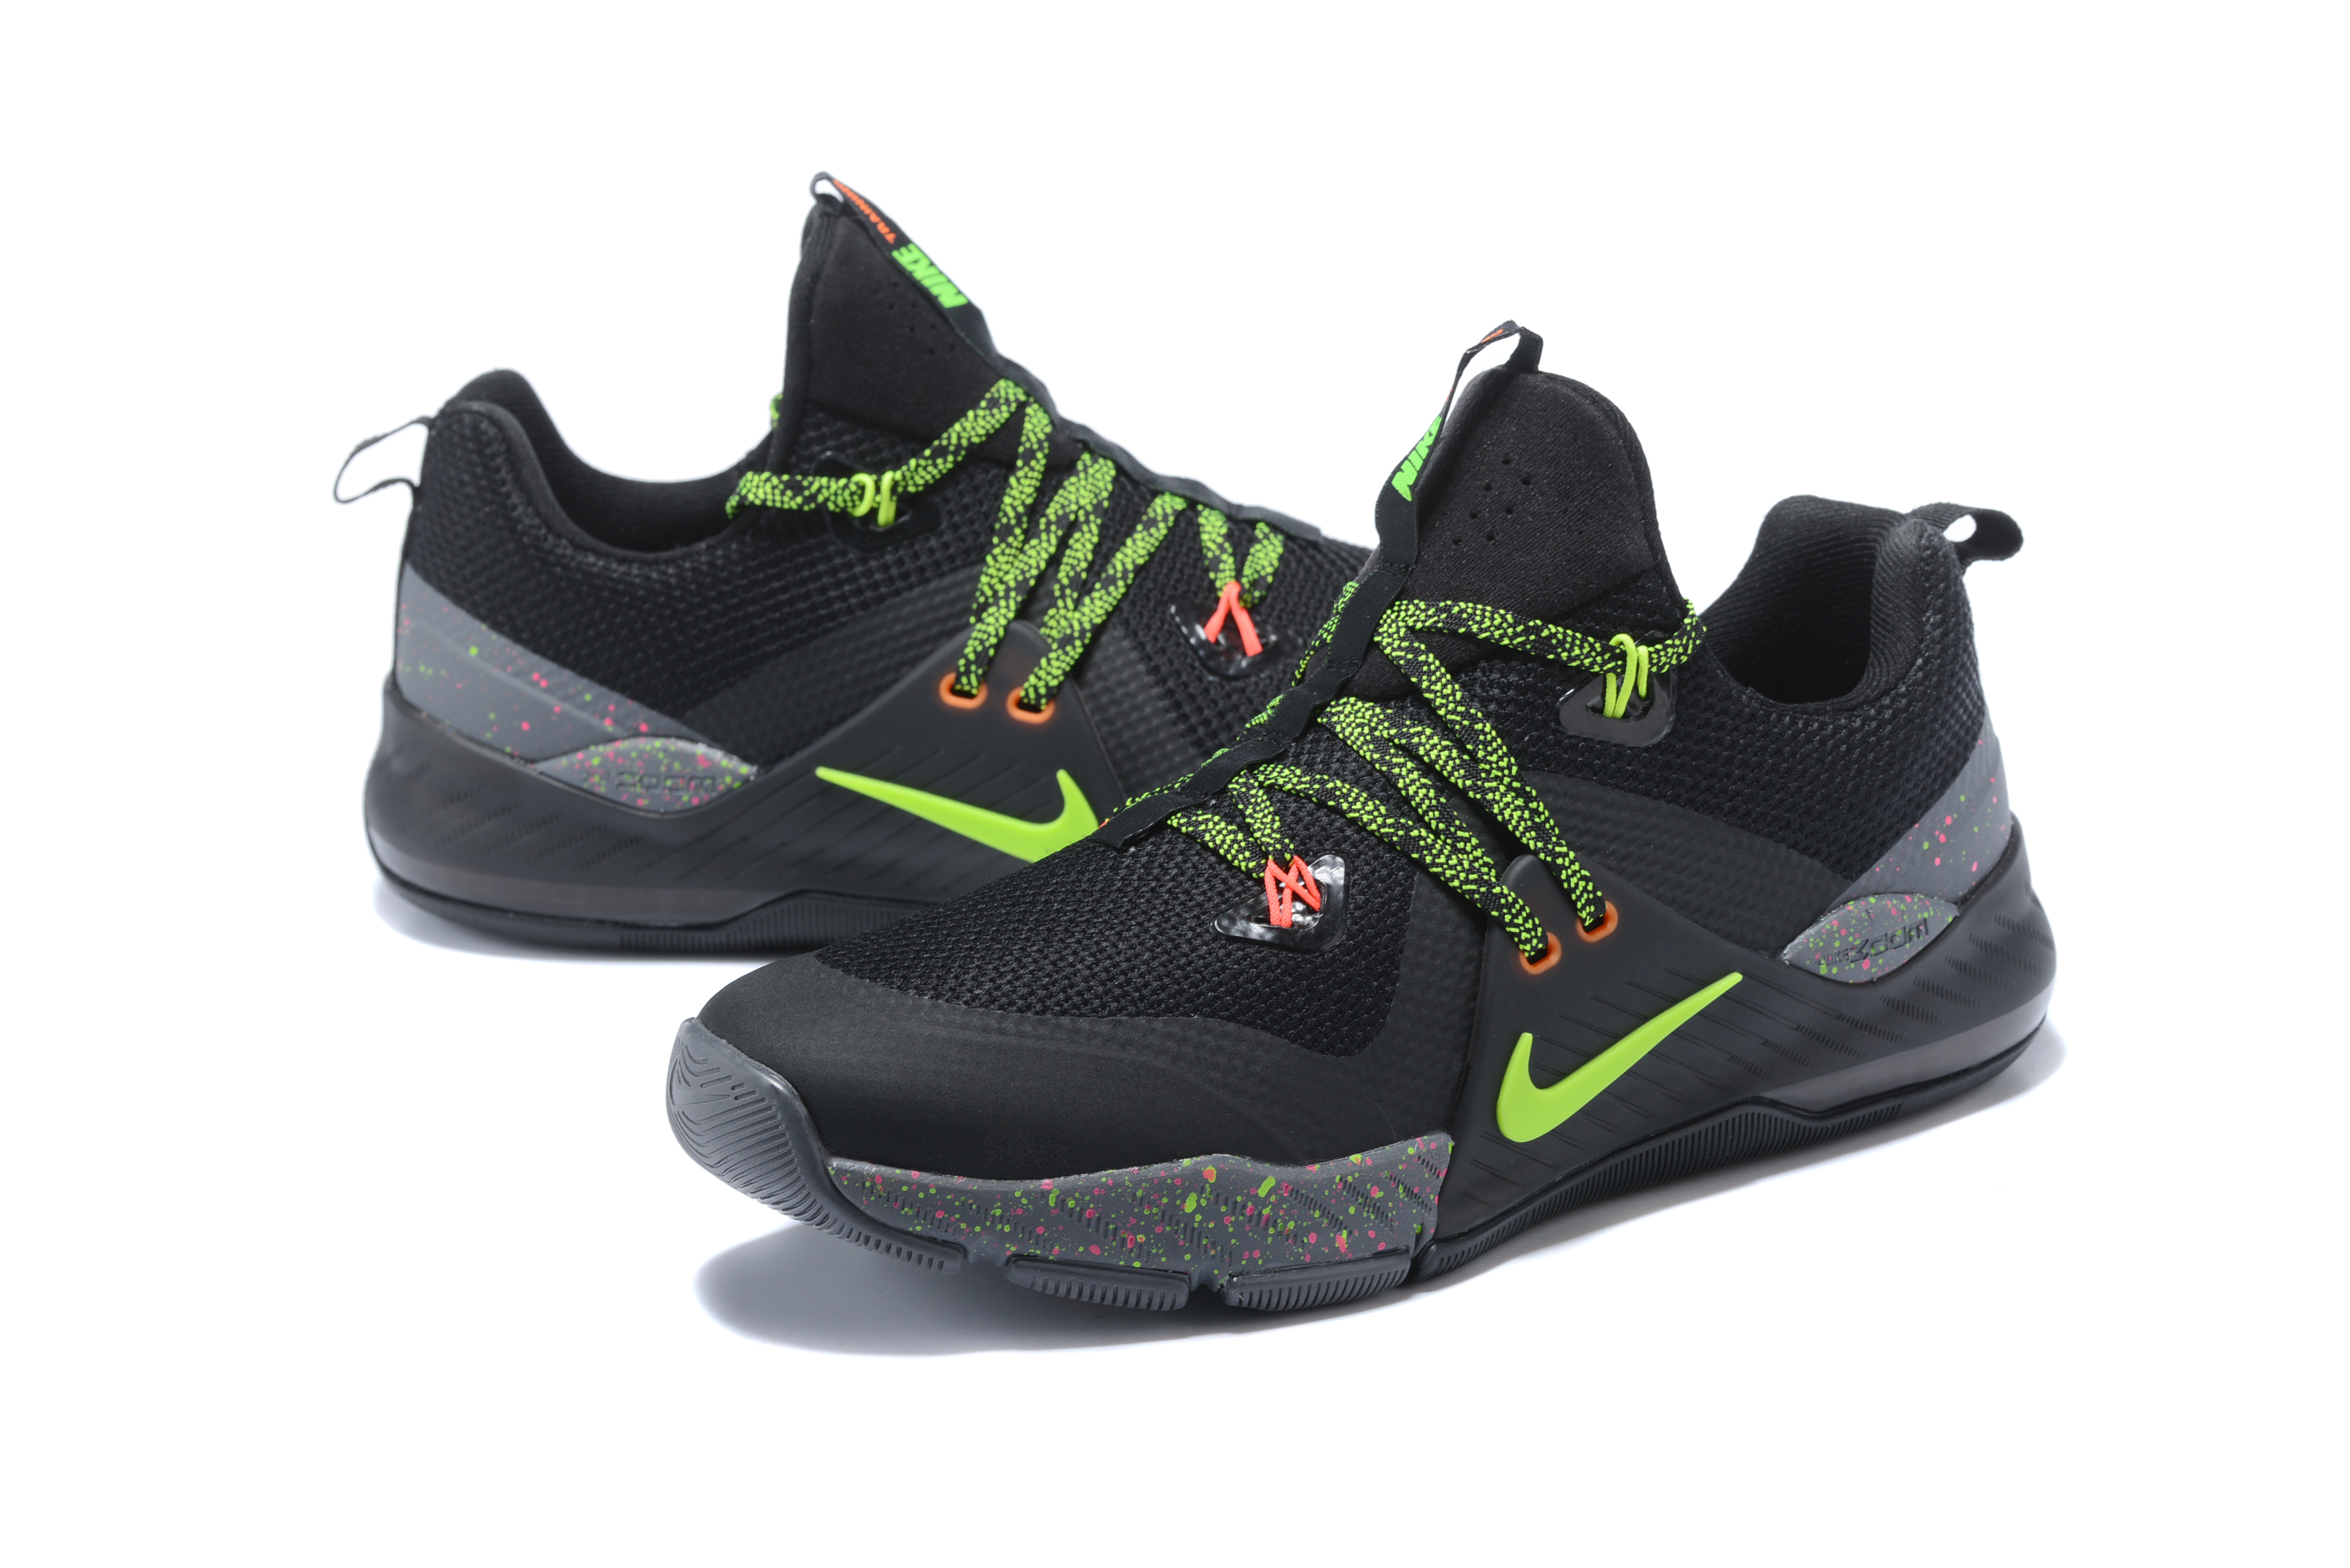 2017 Nike Air Zoom 2 Black Green Shoes